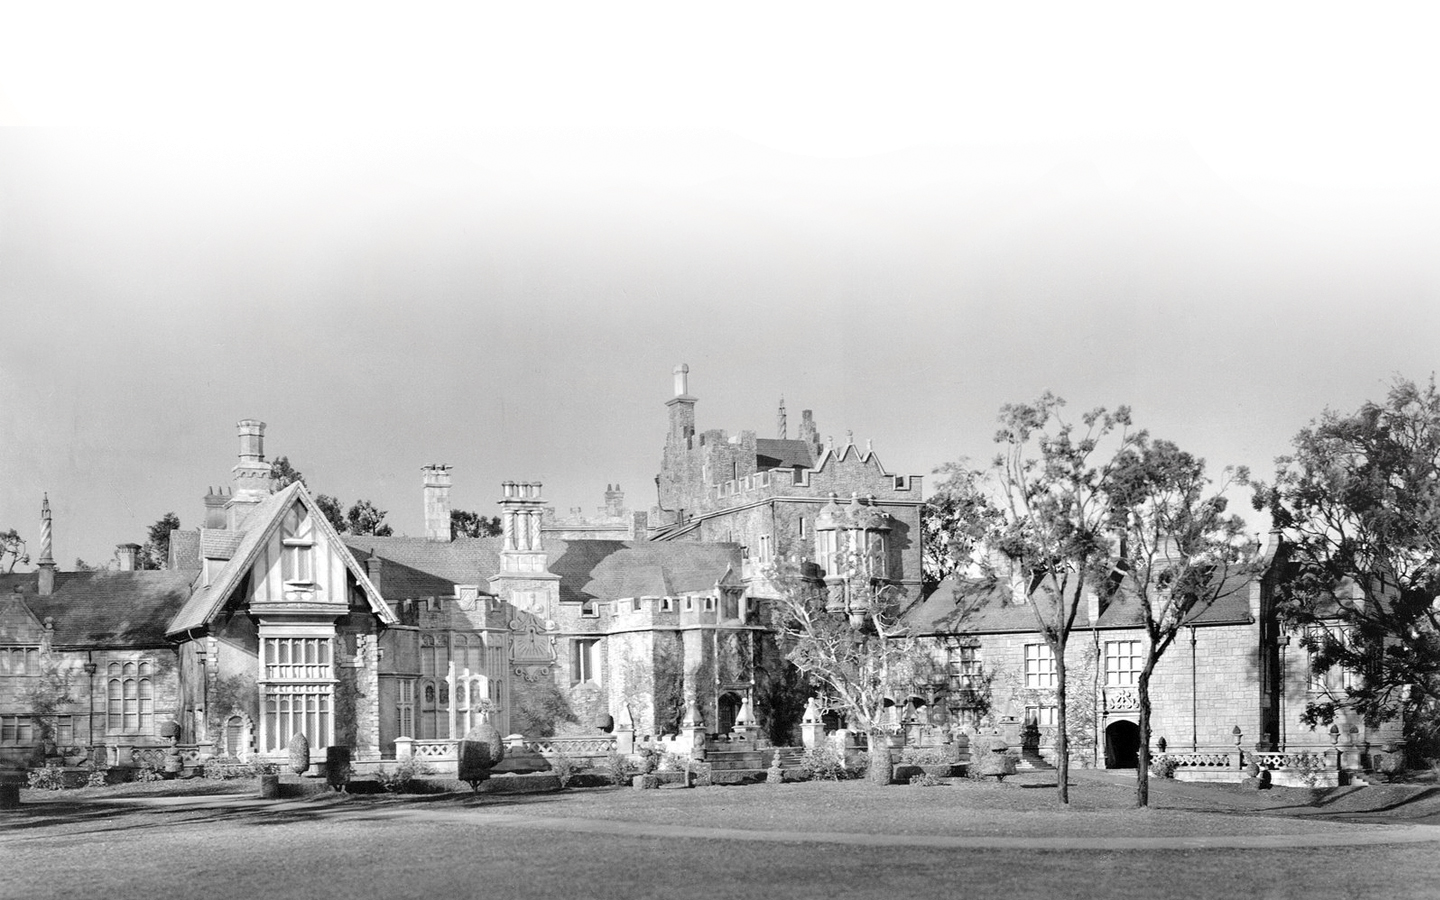 Black and white image of Manderley Mansion